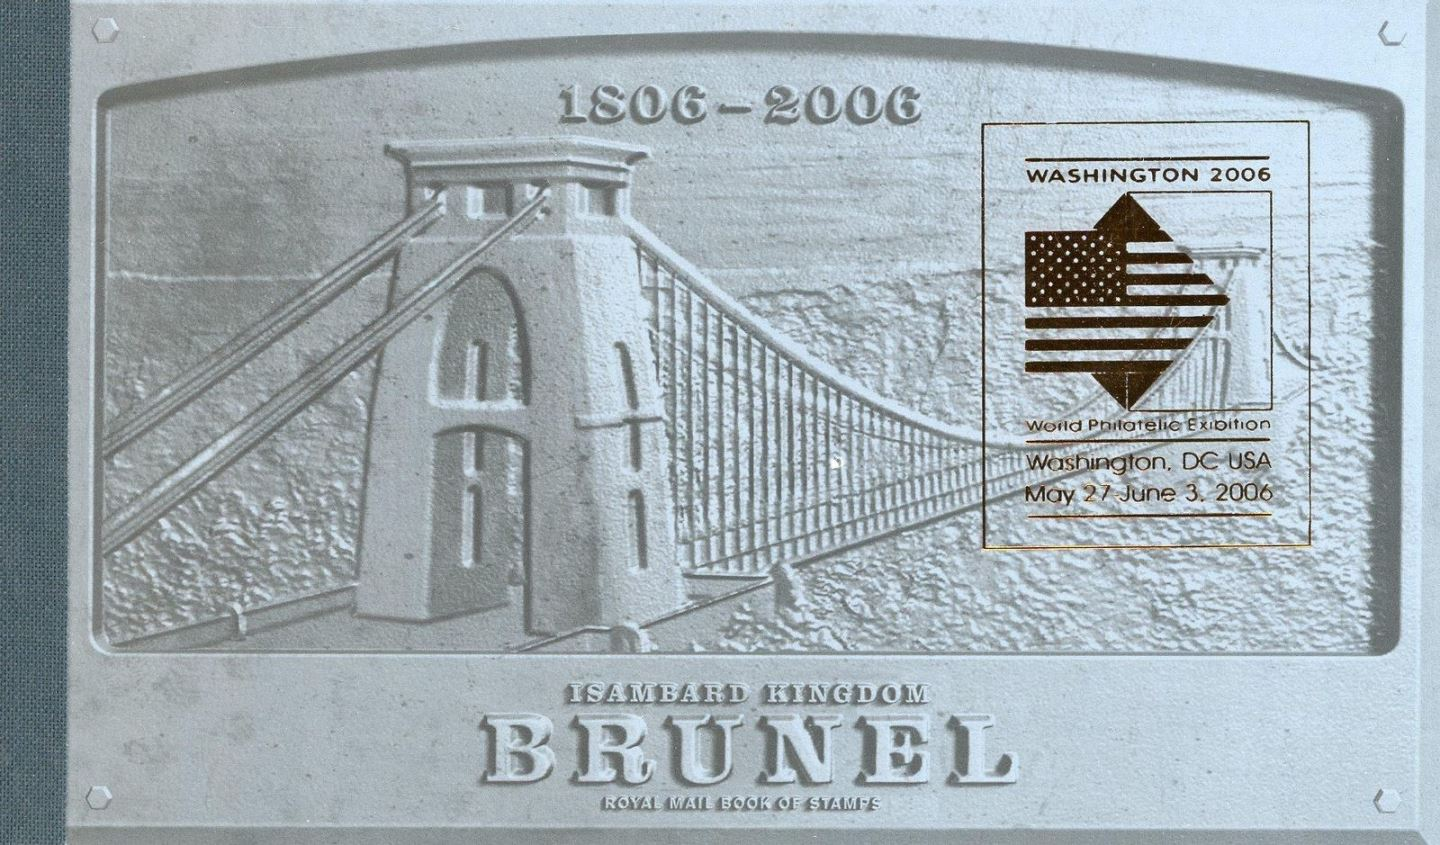 2006 GB - DX36a - Isambard Kingdom Brunel WASHINGTON Ovpt